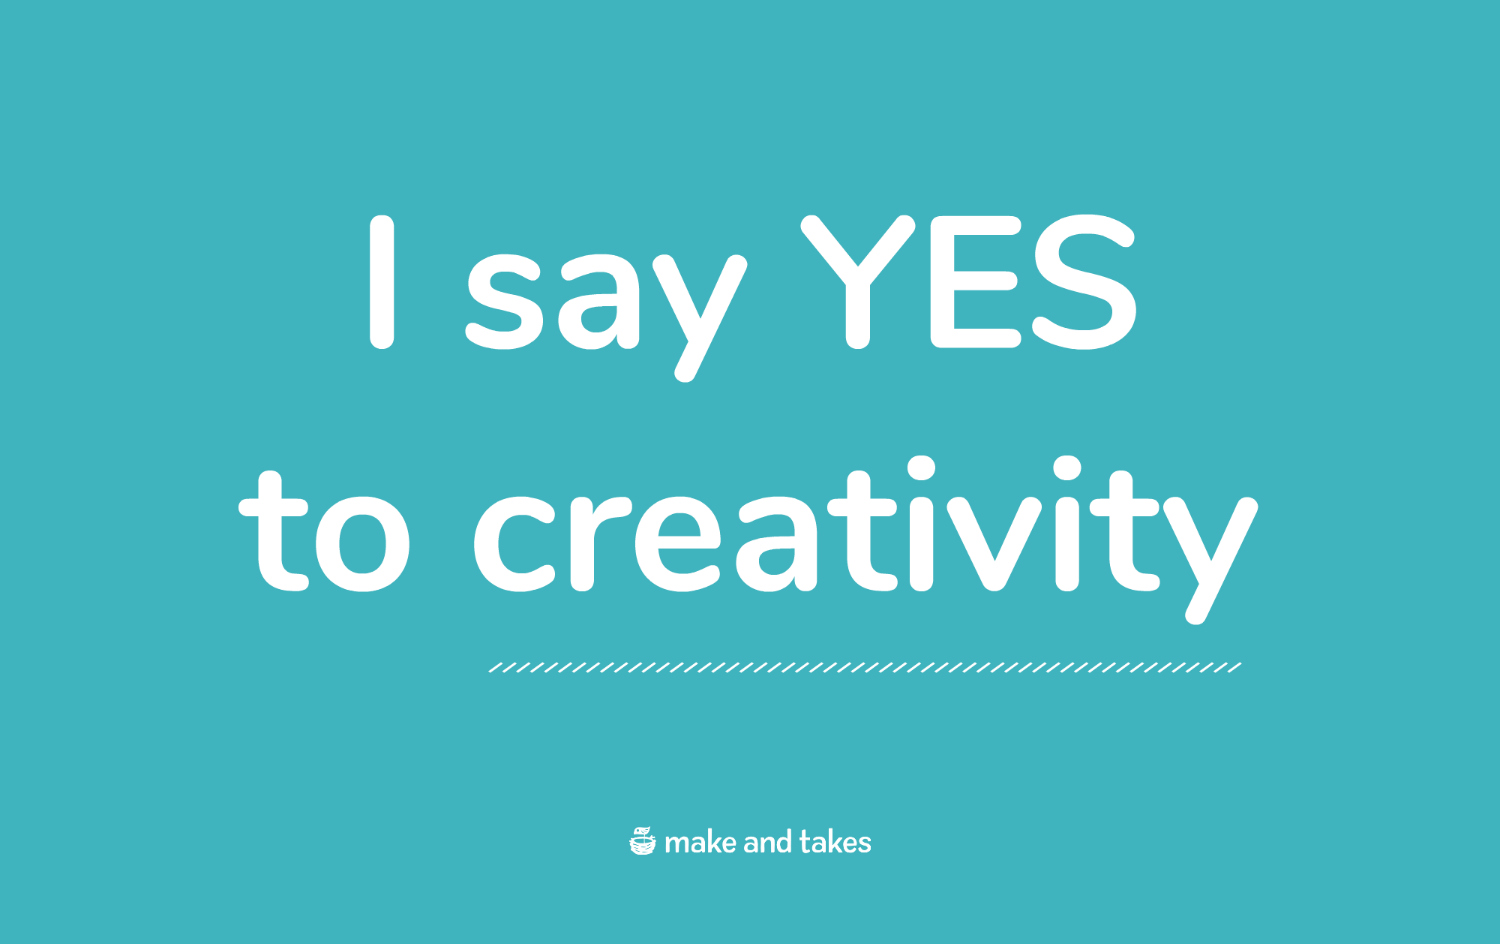 I say yes to creativity